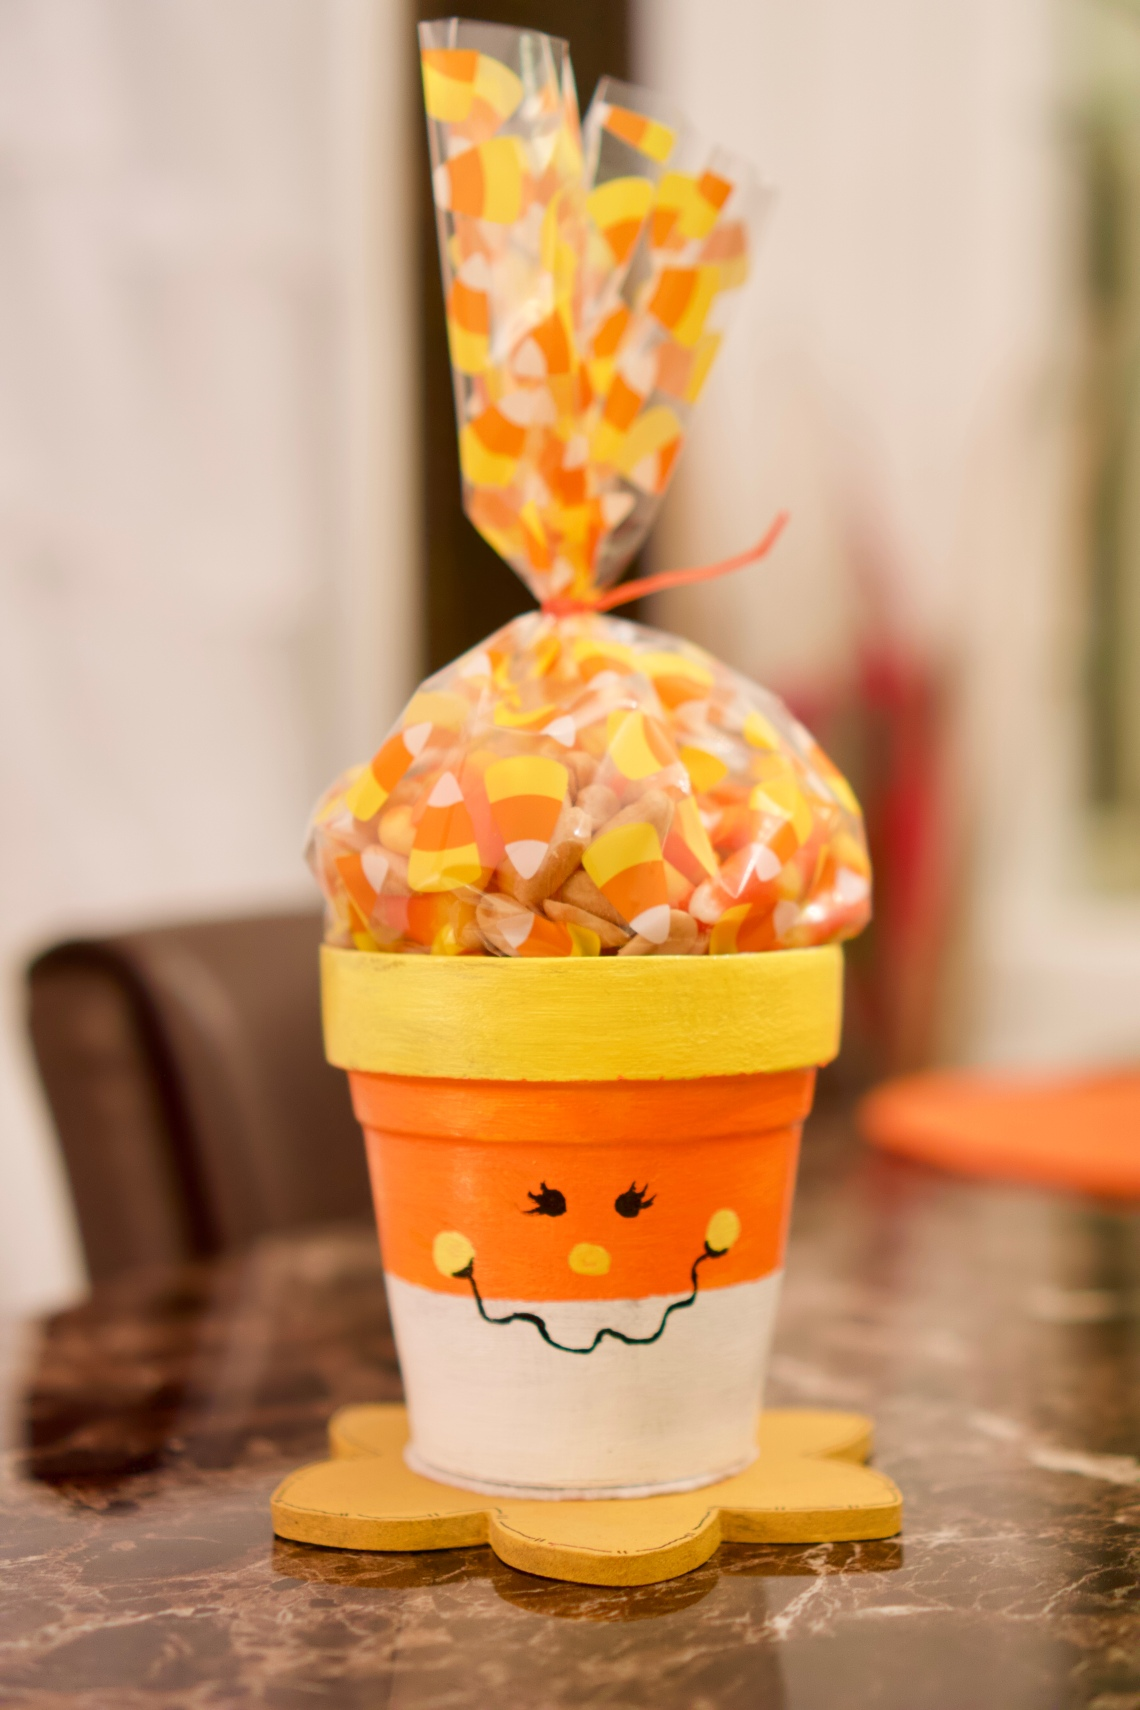 Candy corn pot © 2018 ericarobbin.com | All rights reserved.